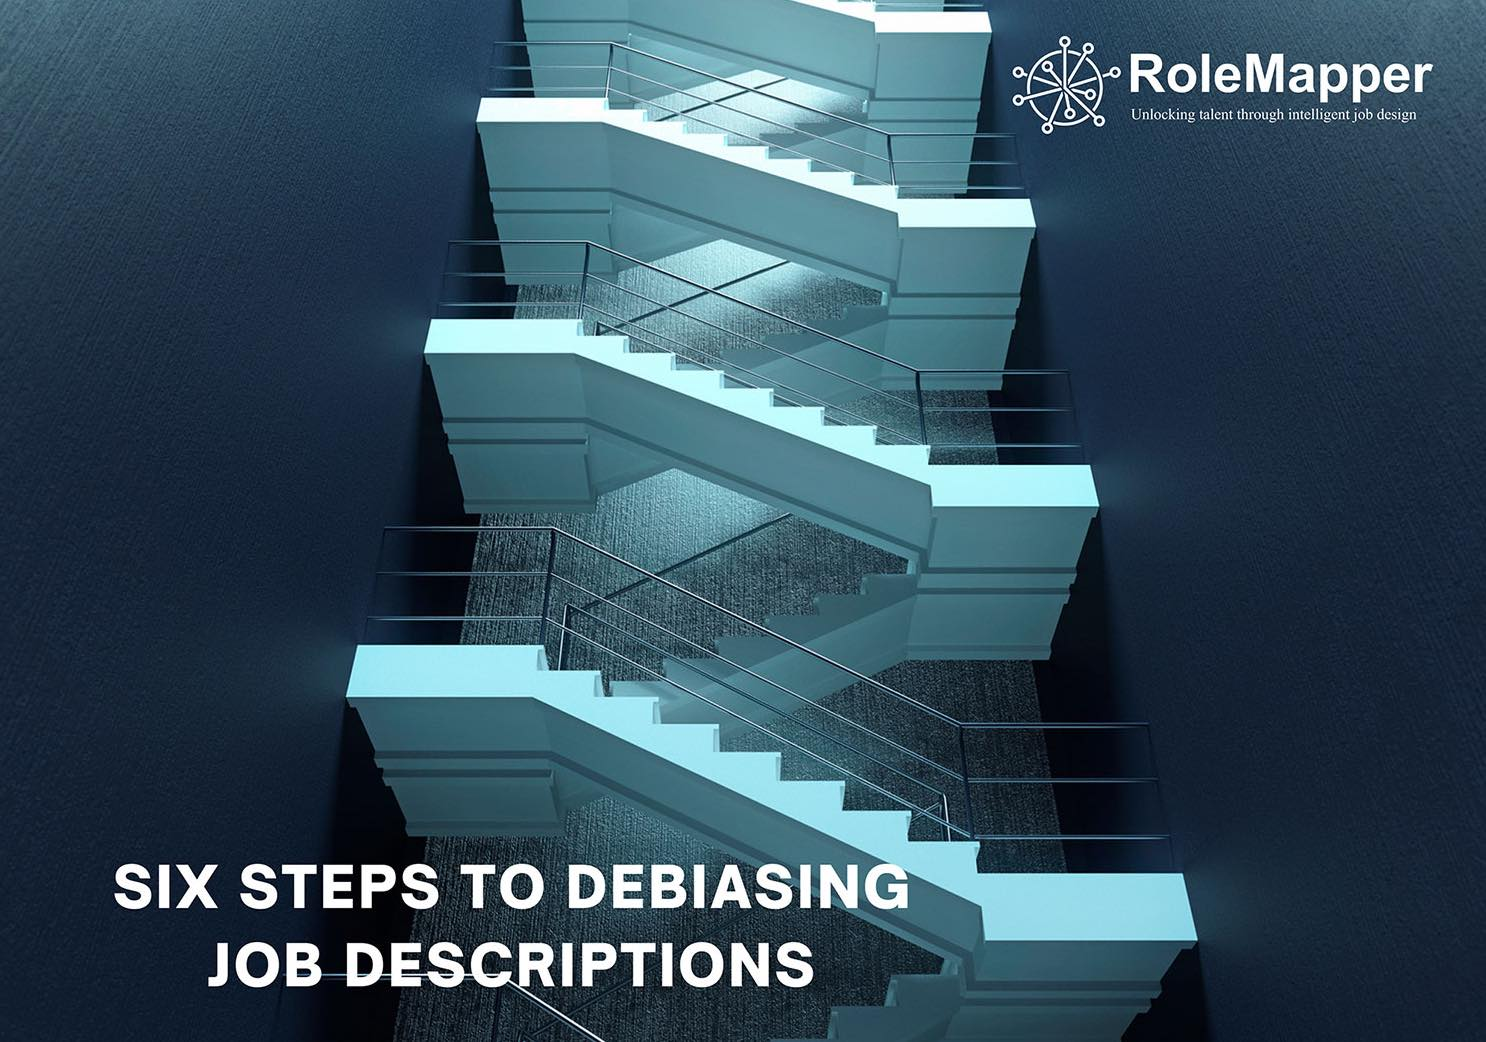 Stairs - cover image of guide